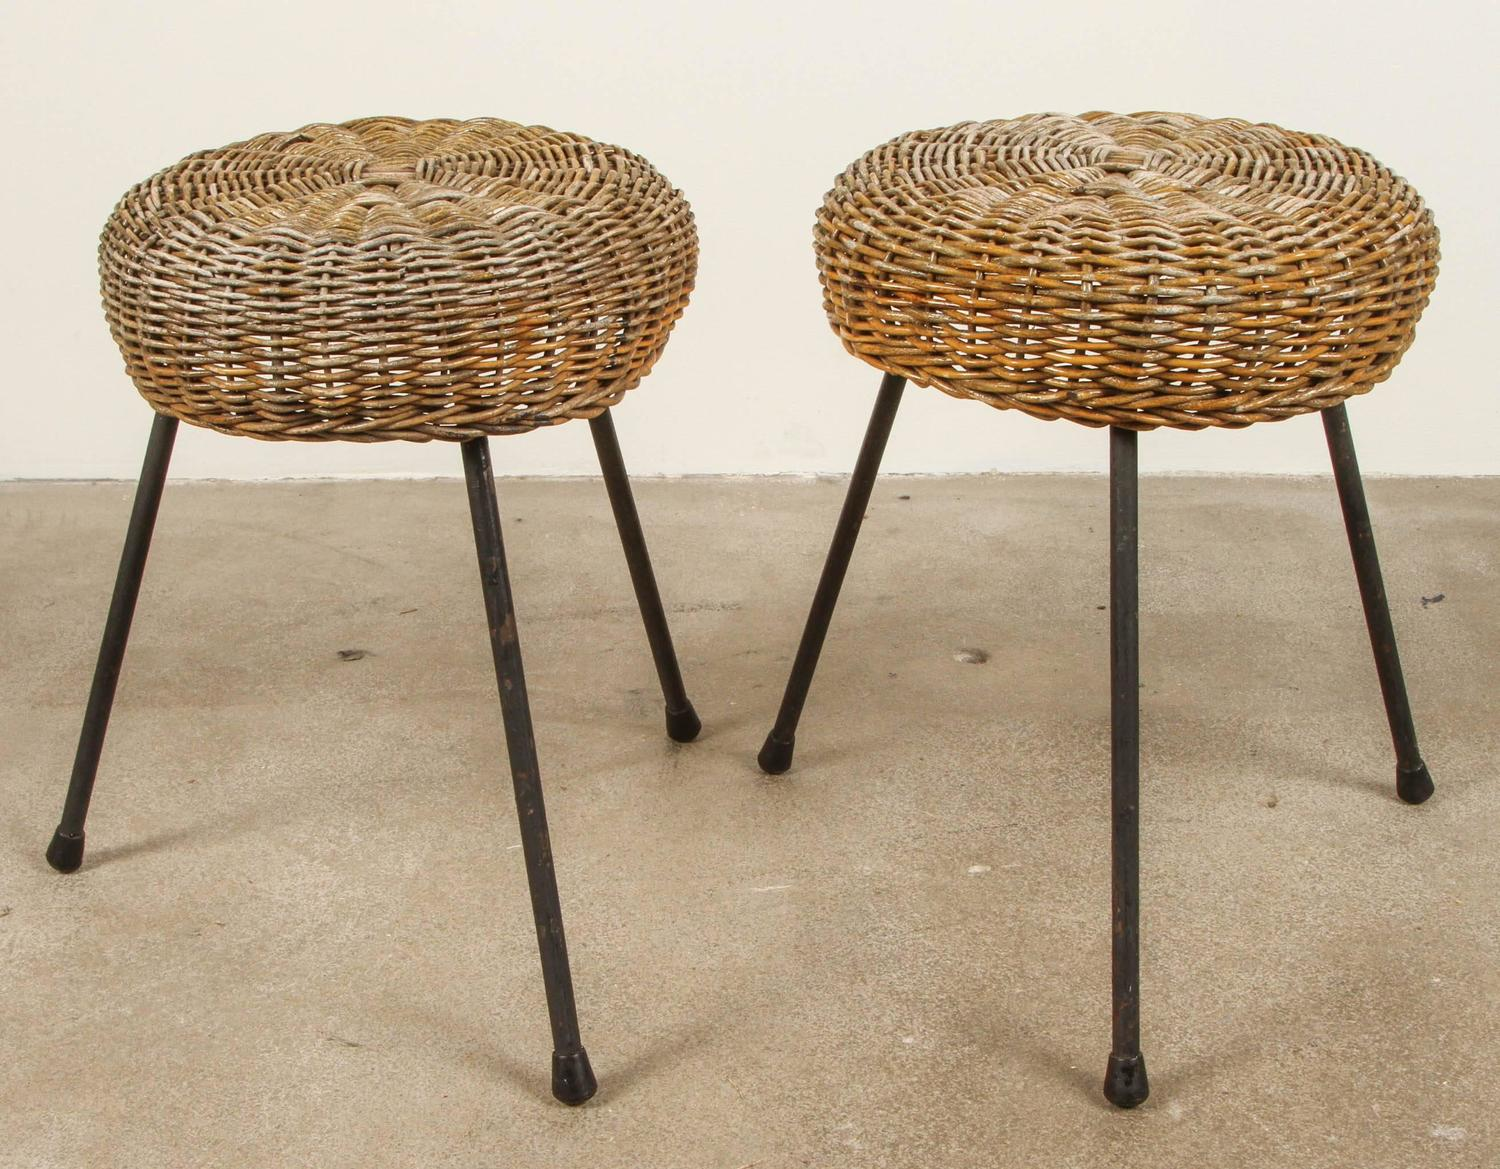 Wicker And Iron Three Legged Stool For Sale At 1stdibs